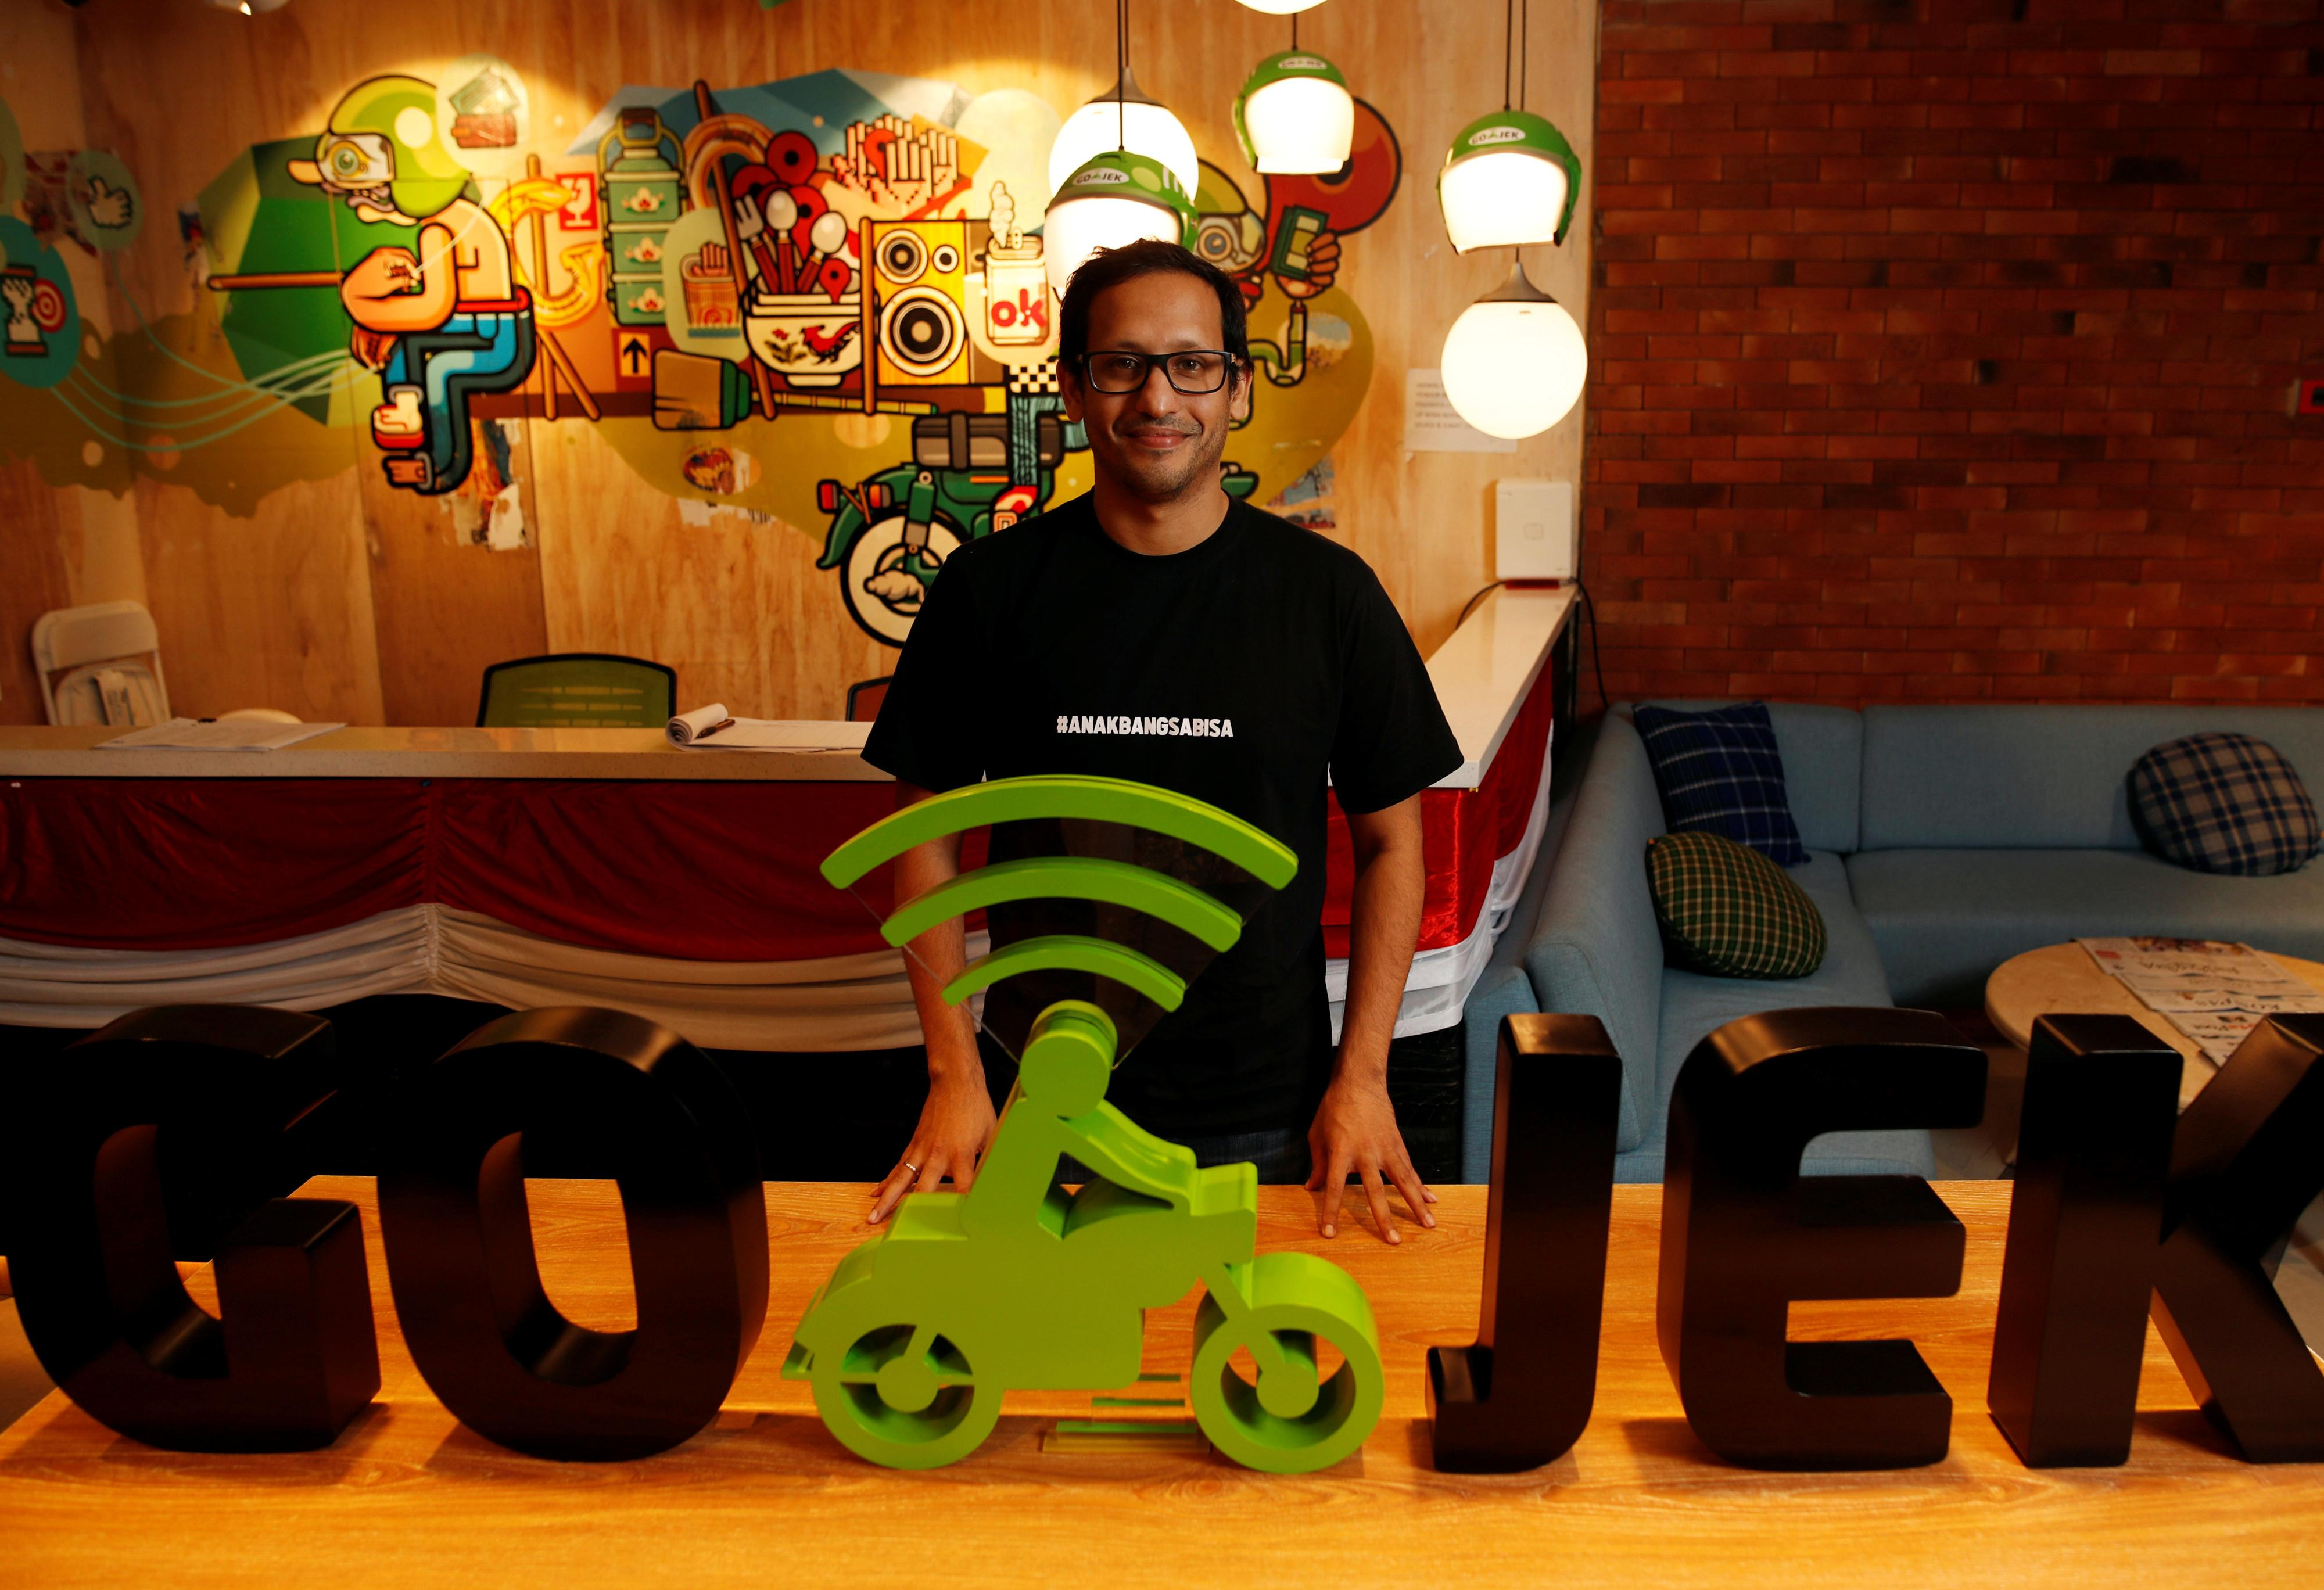 Gojek CEO Makarim quits, says will join Indonesia's cabinet